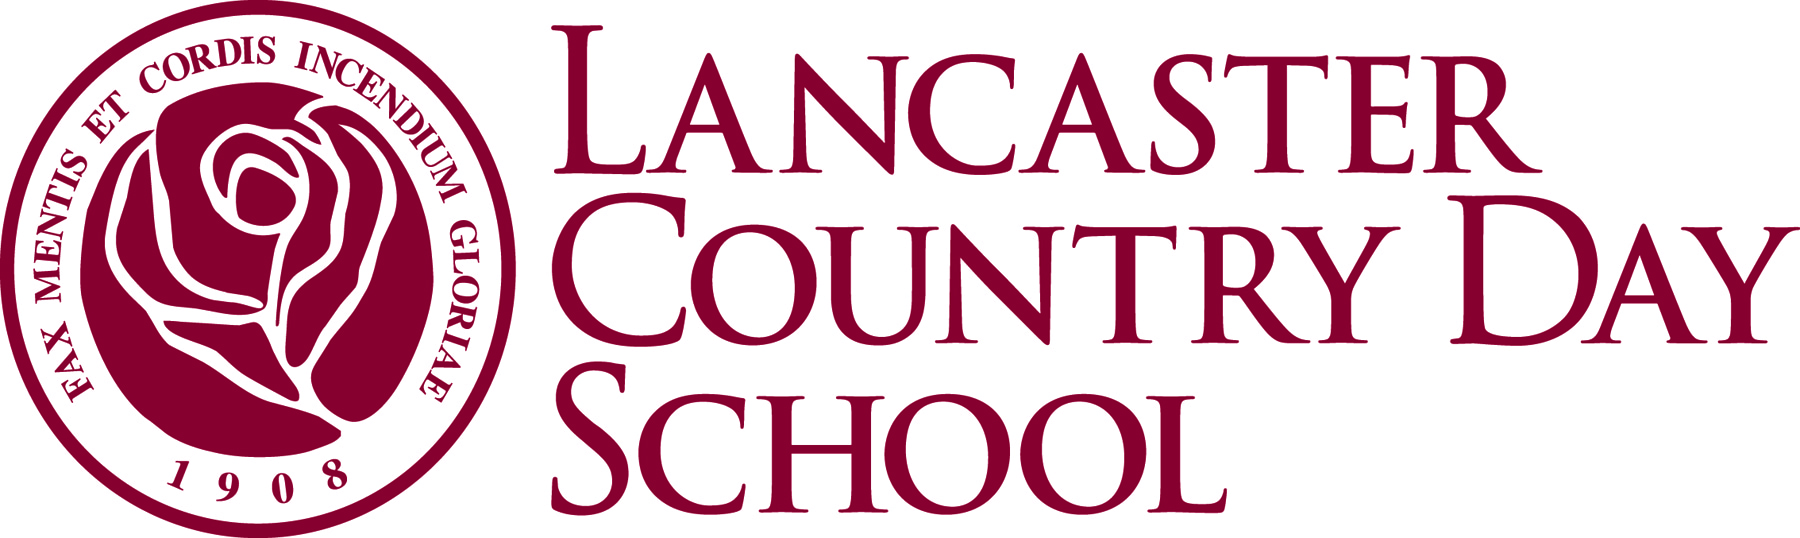 Lancaster Country Day School